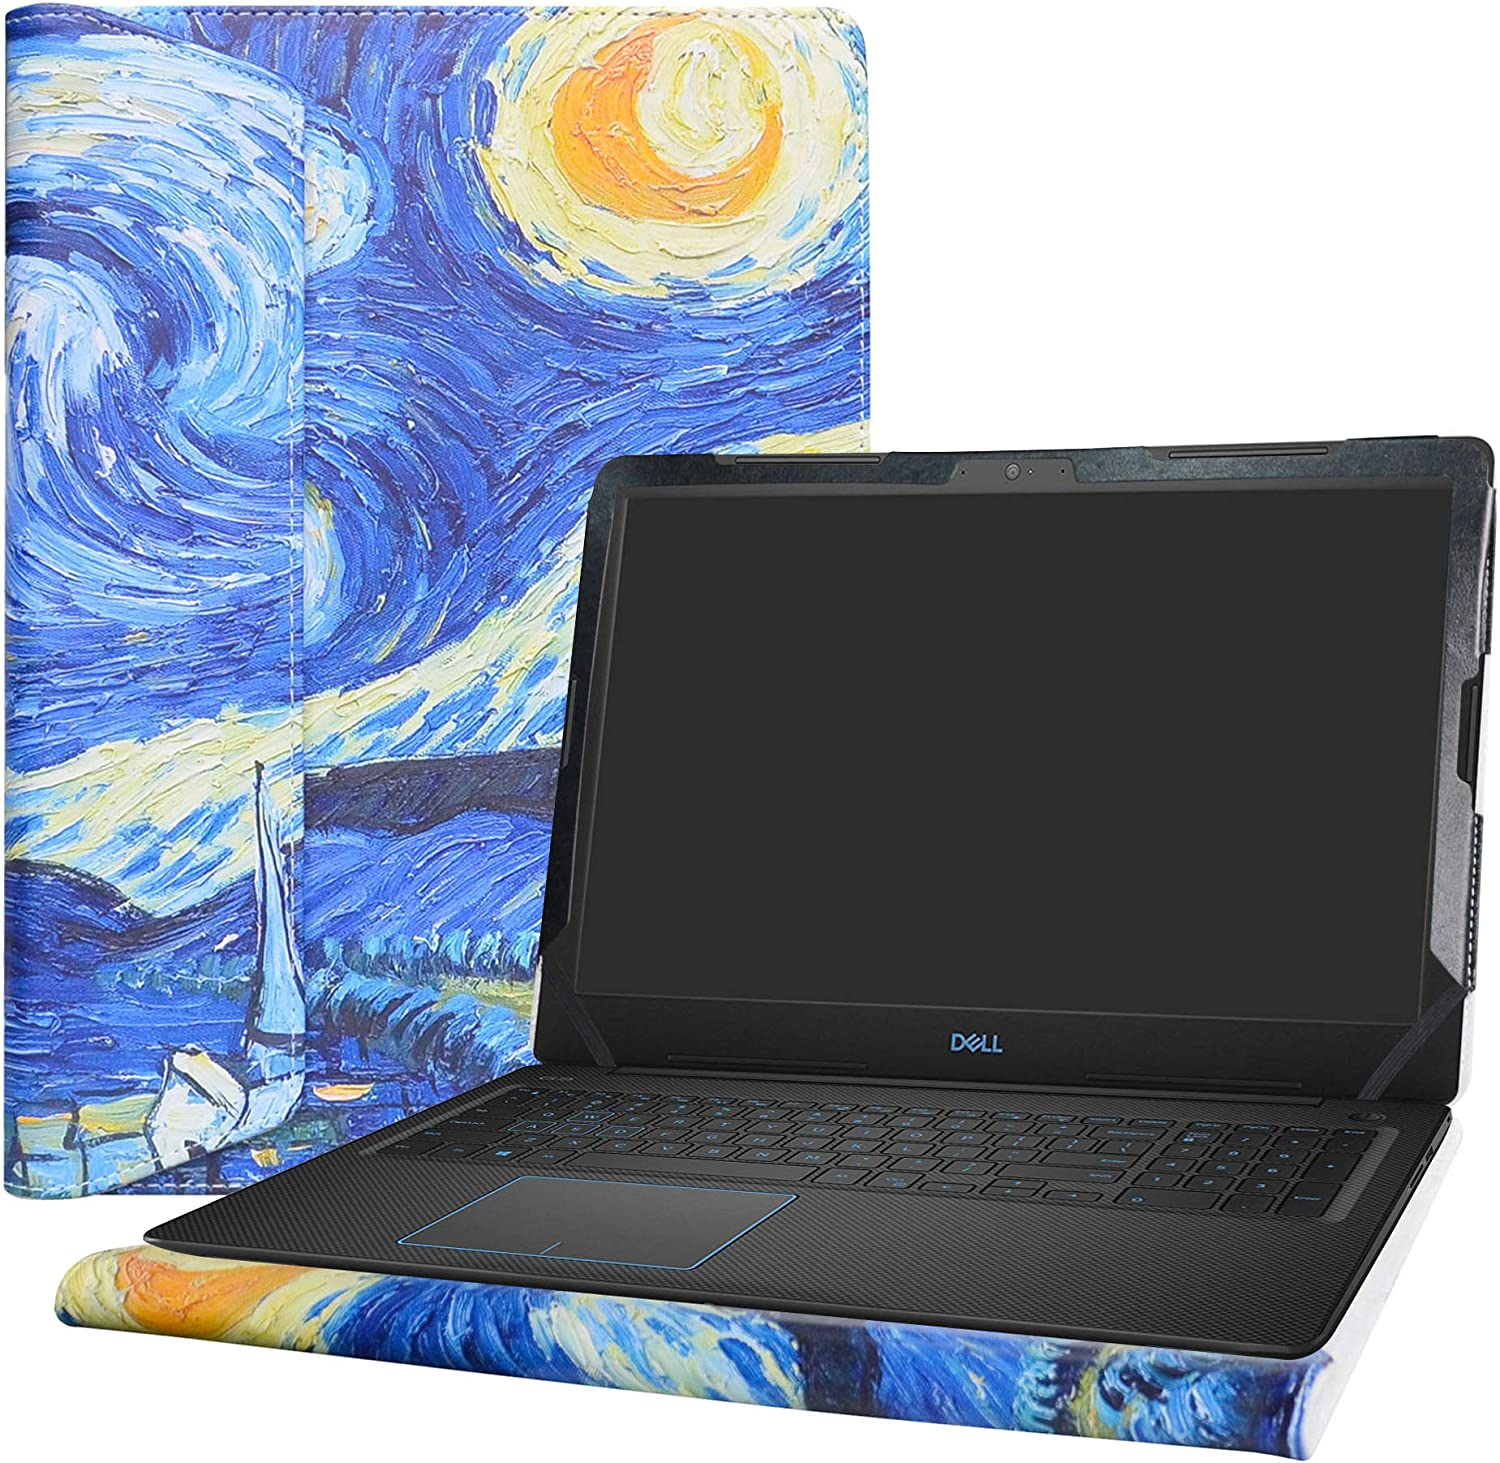 "Alapmk Protective Case Cover for 15.6"" ACER CHROMEBOOK 315 CB315-2H & Dell G3 3579/Dell Vostro 15 3590 3591 3584 Laptop(Note:Not fit Dell G3 3590/ACER CHROMEBOOK 315 CB315-1H CB315-3H),Starry Night"